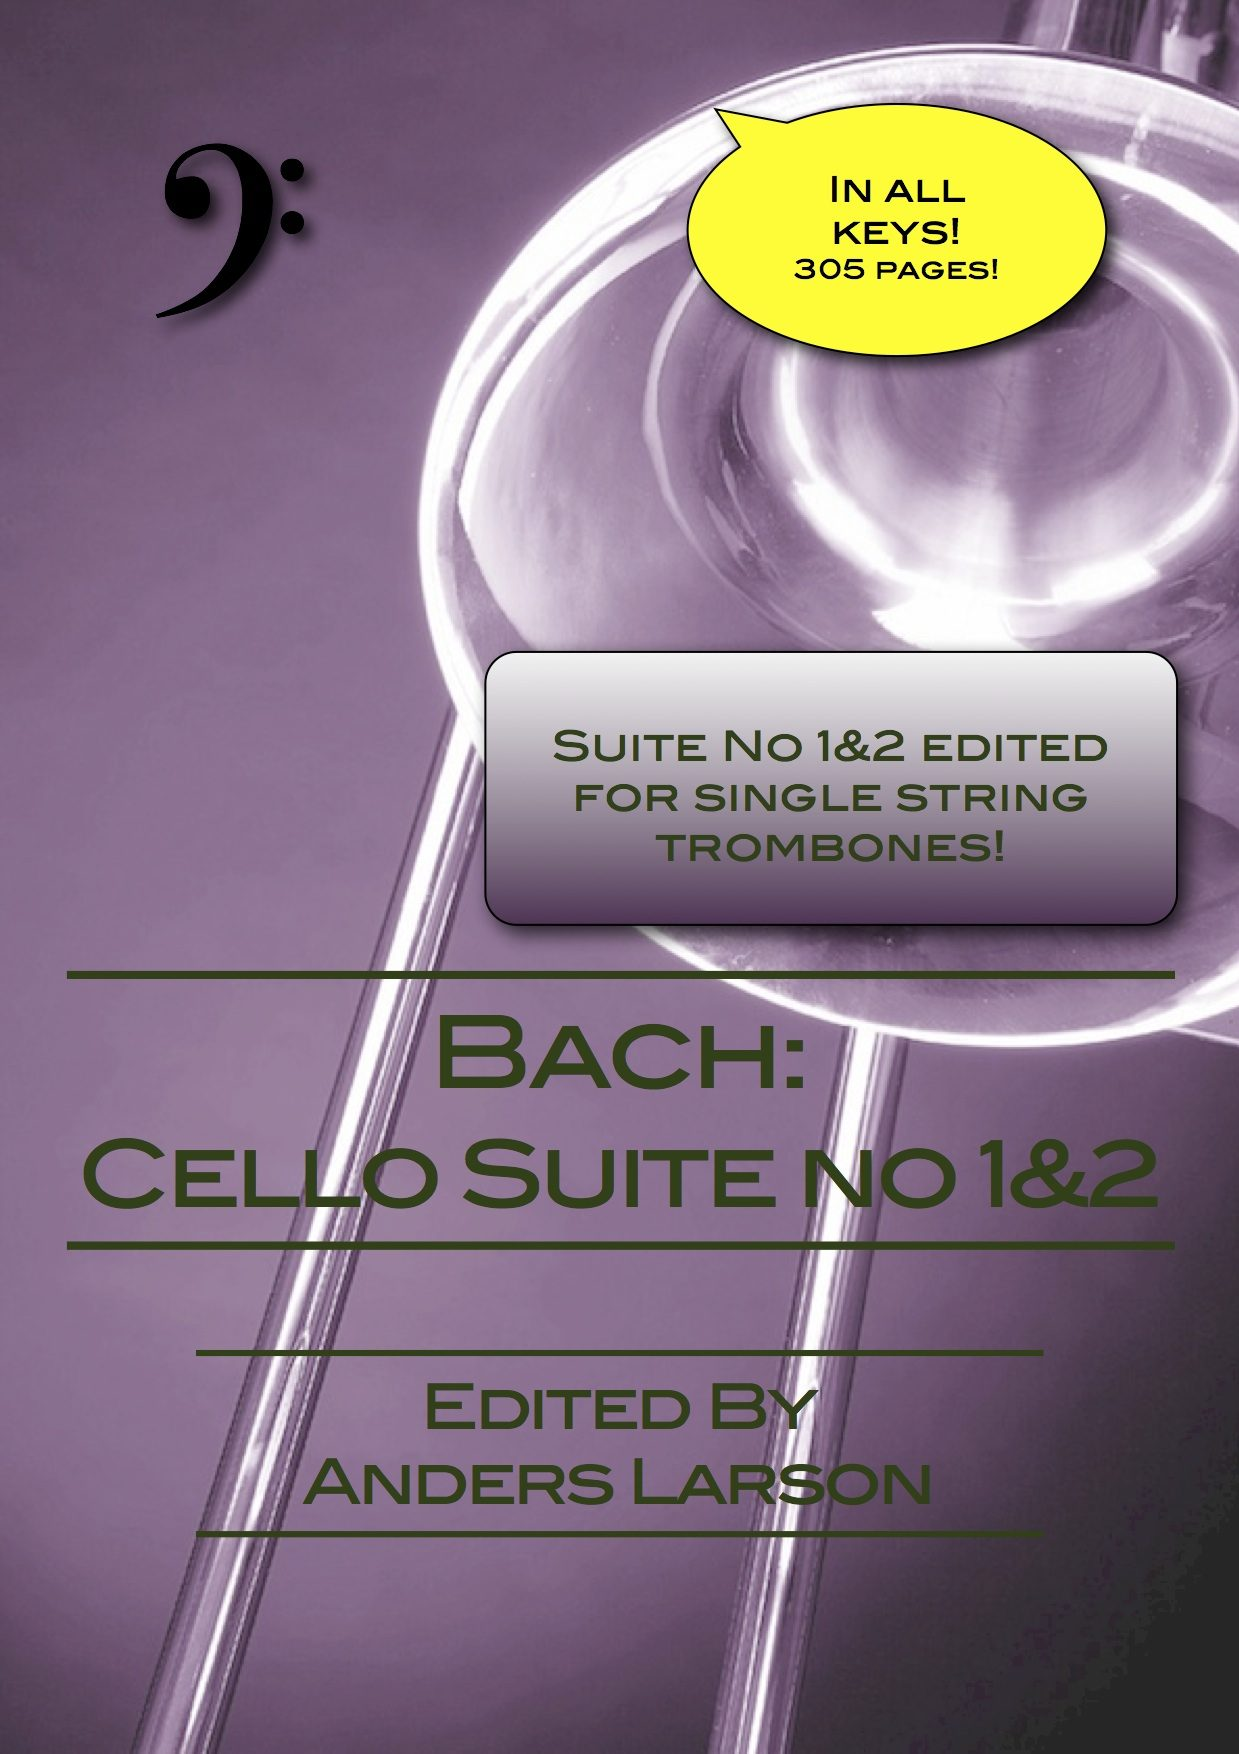 Bach Cello suite No 1 and 2 edited for trombone IN ALL KEYS